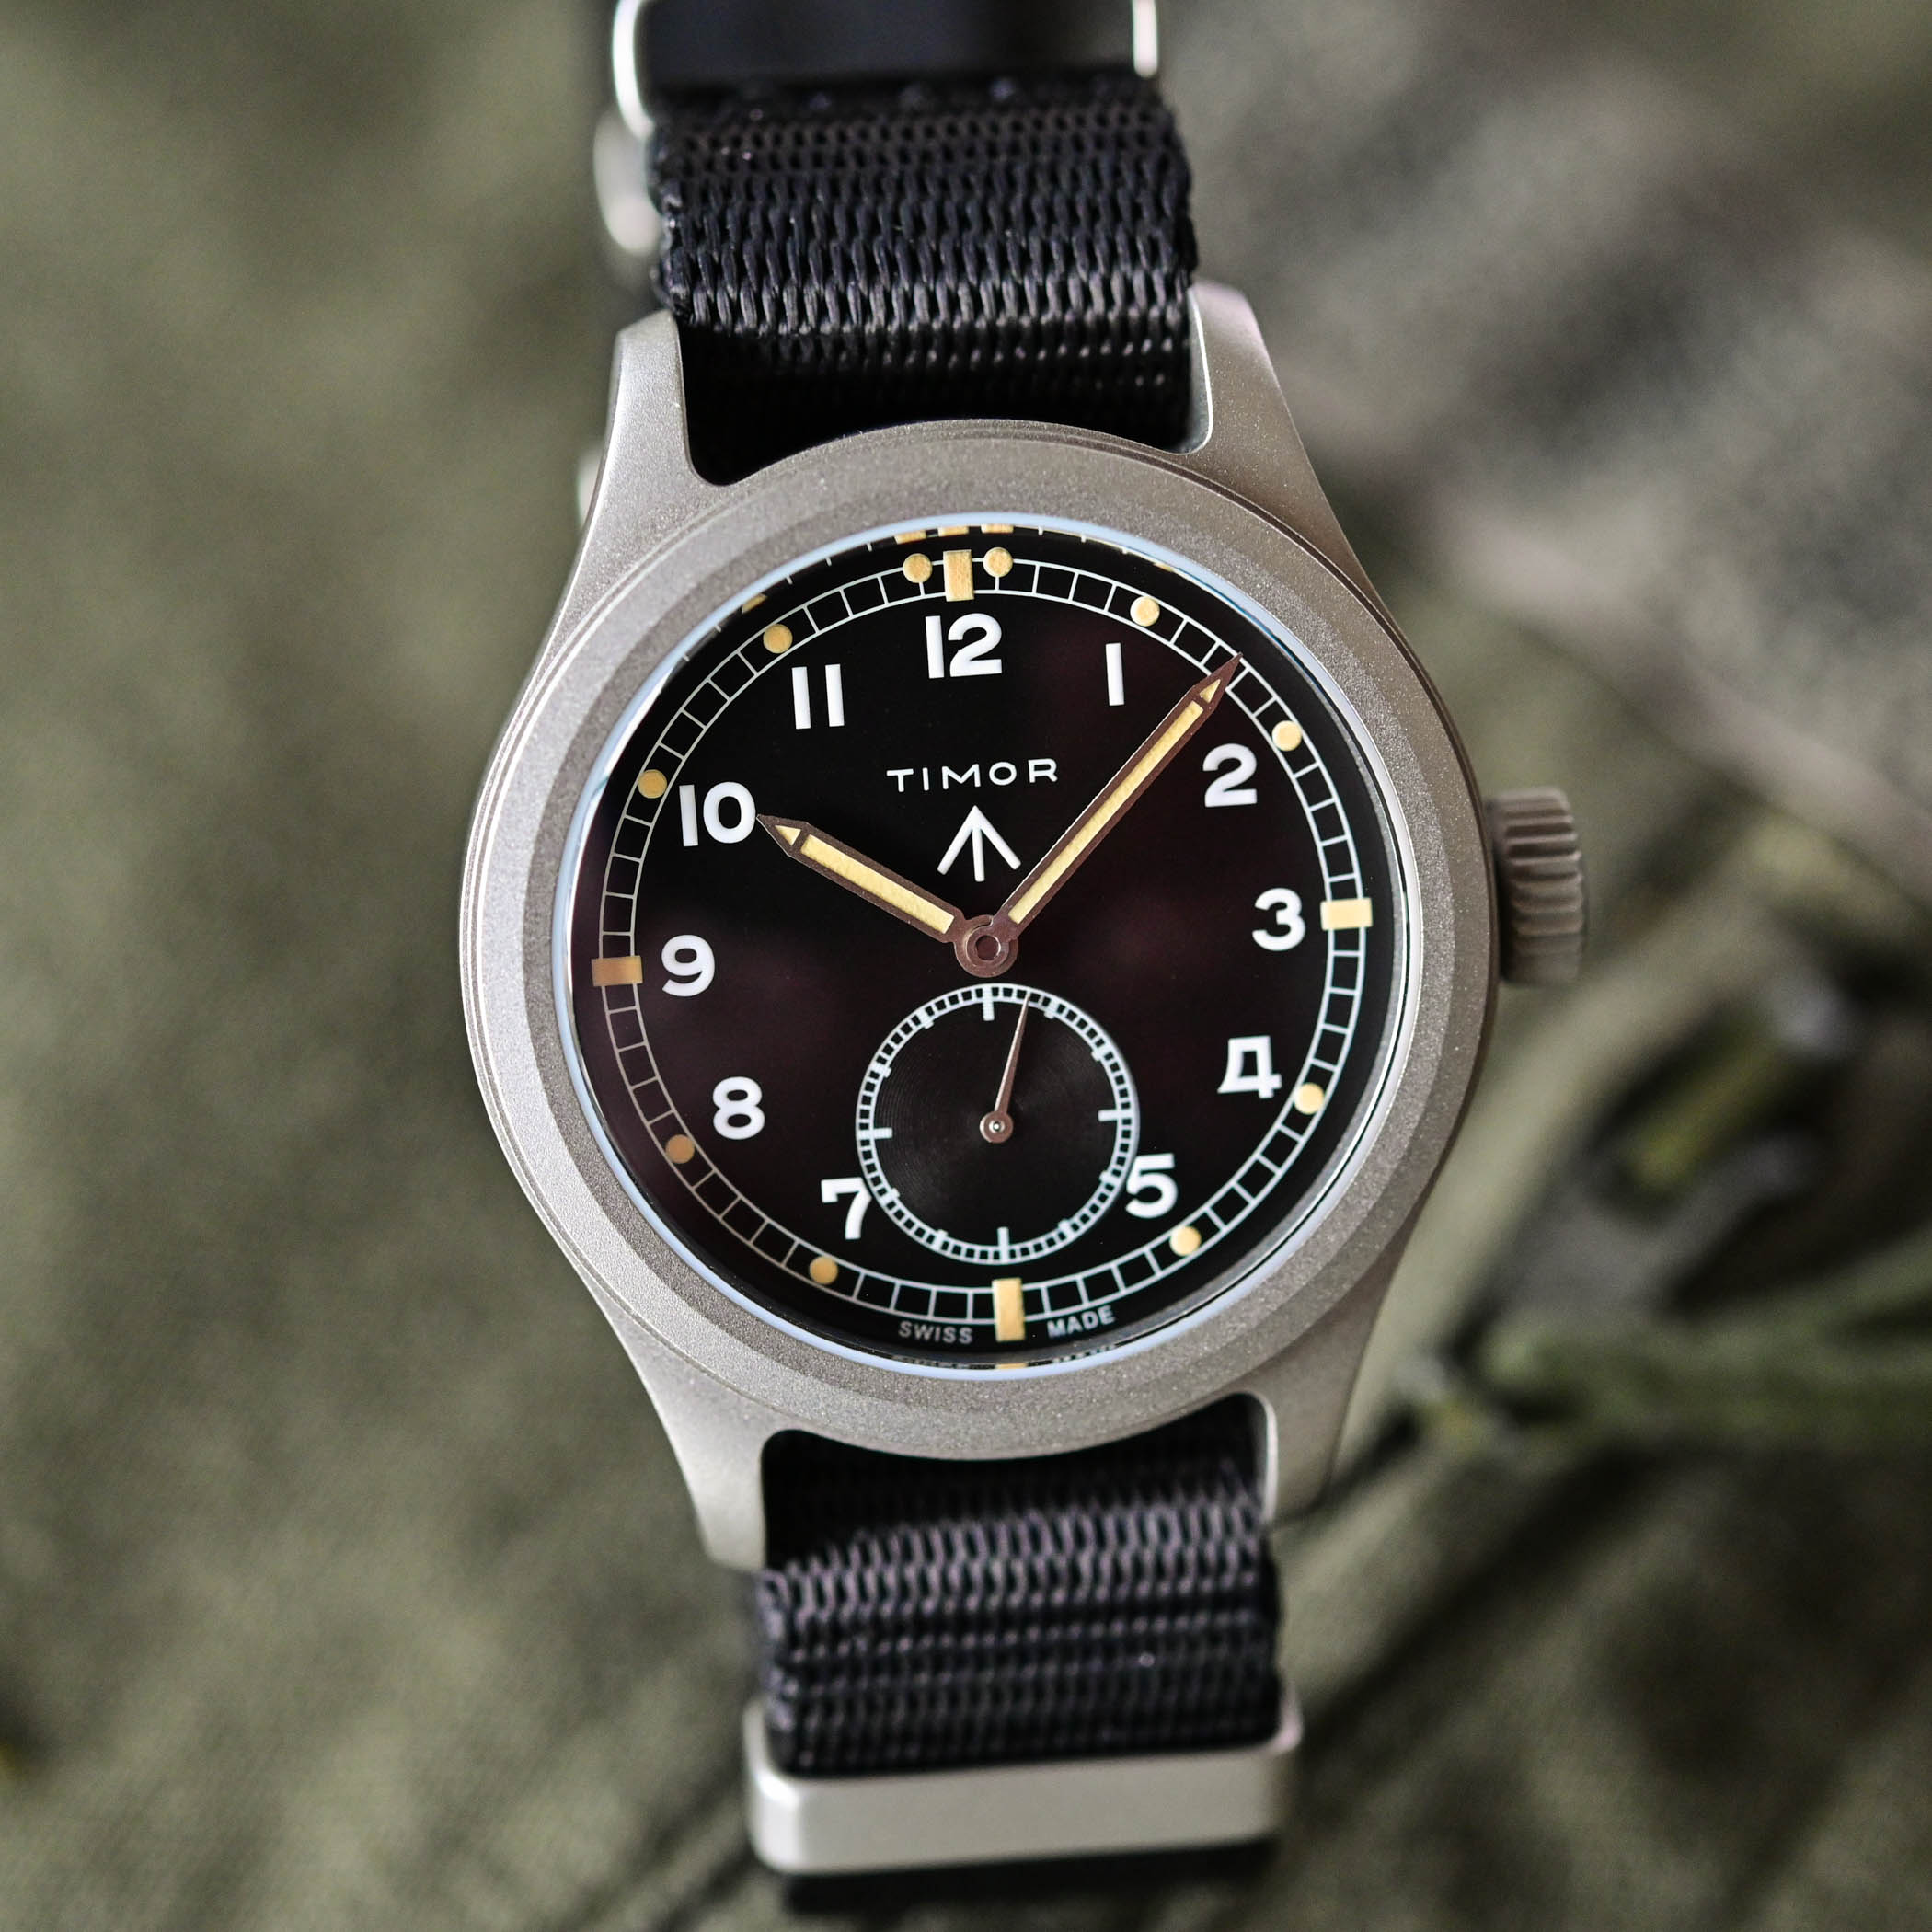 battle of accessible British military-inspired watches - comparative review Hamilton Khaki Pilot Pioneer Mechanical versus Timor Heritage Field - 9